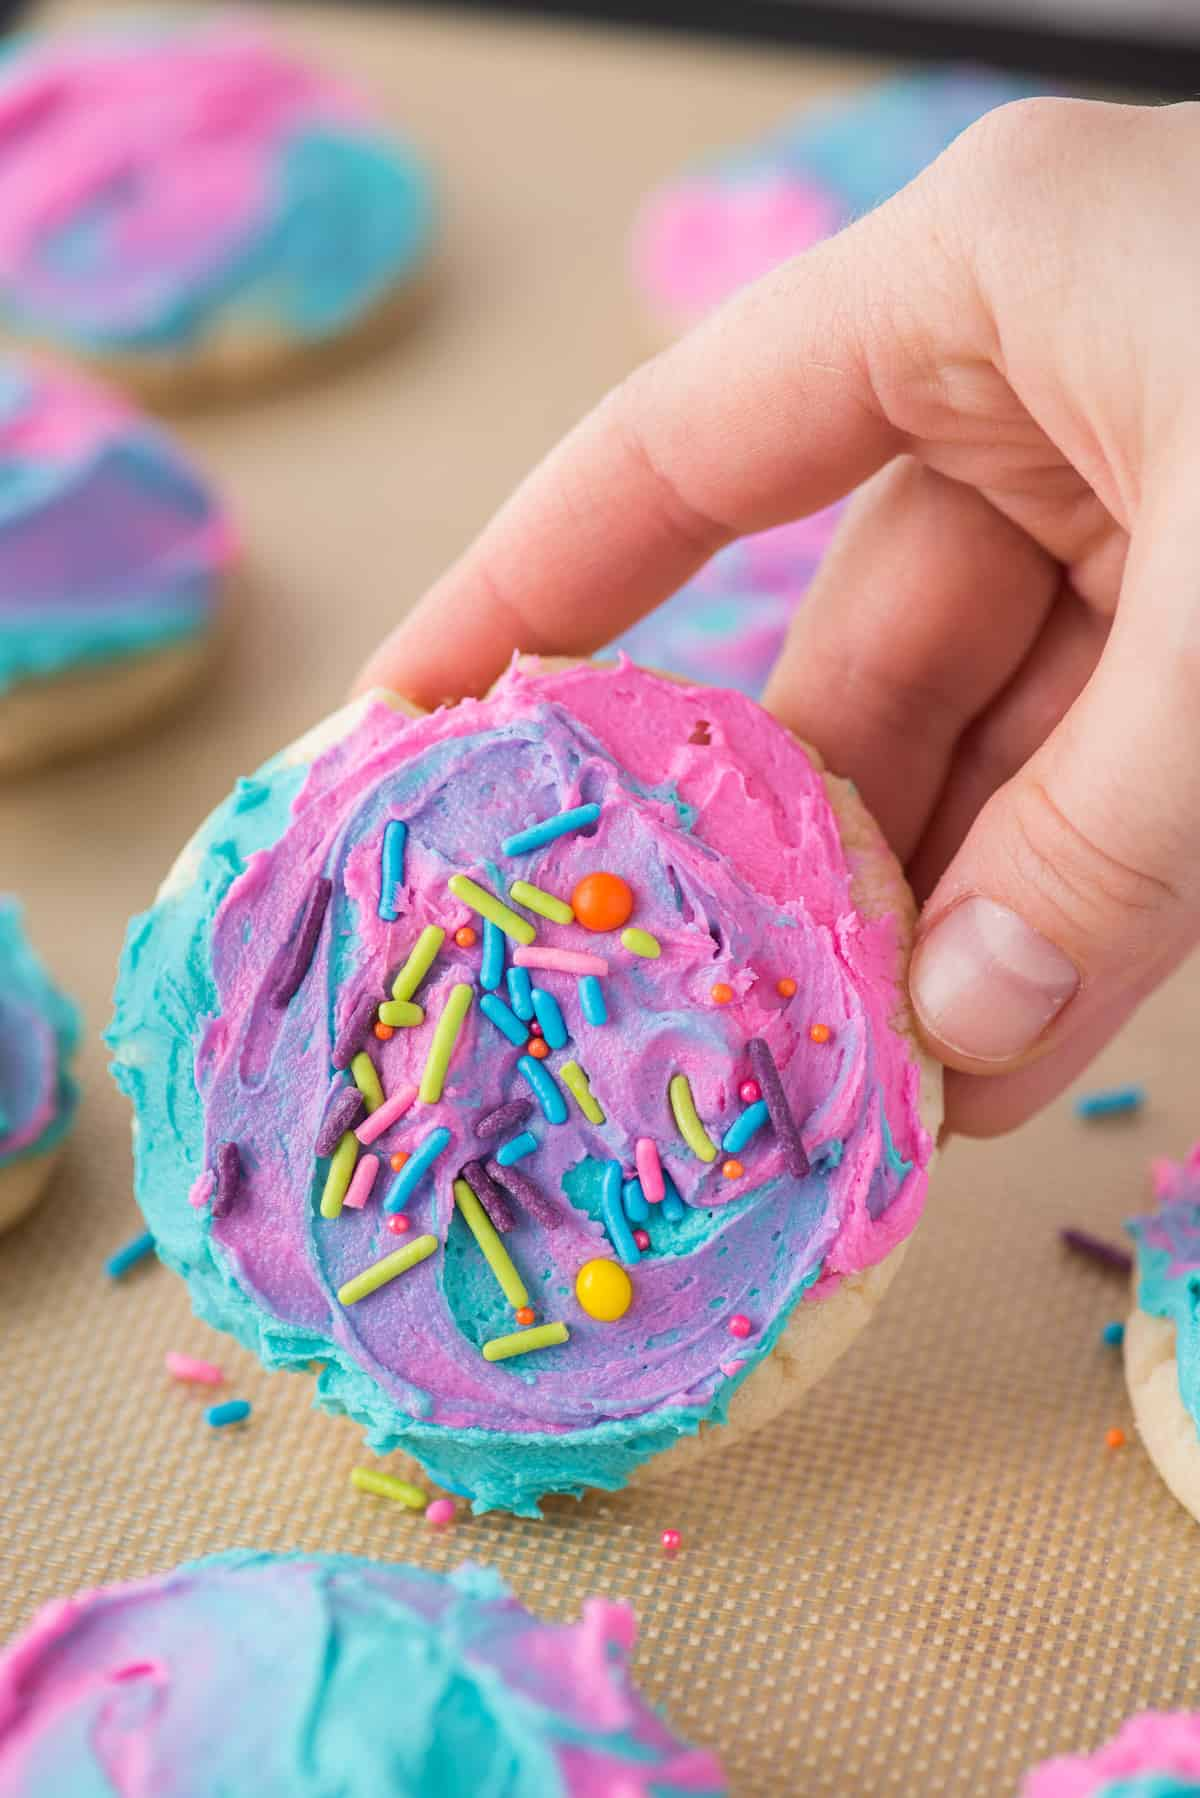 hand holding frosted sugar cookie with tie dye frosting and colorful sprinkles